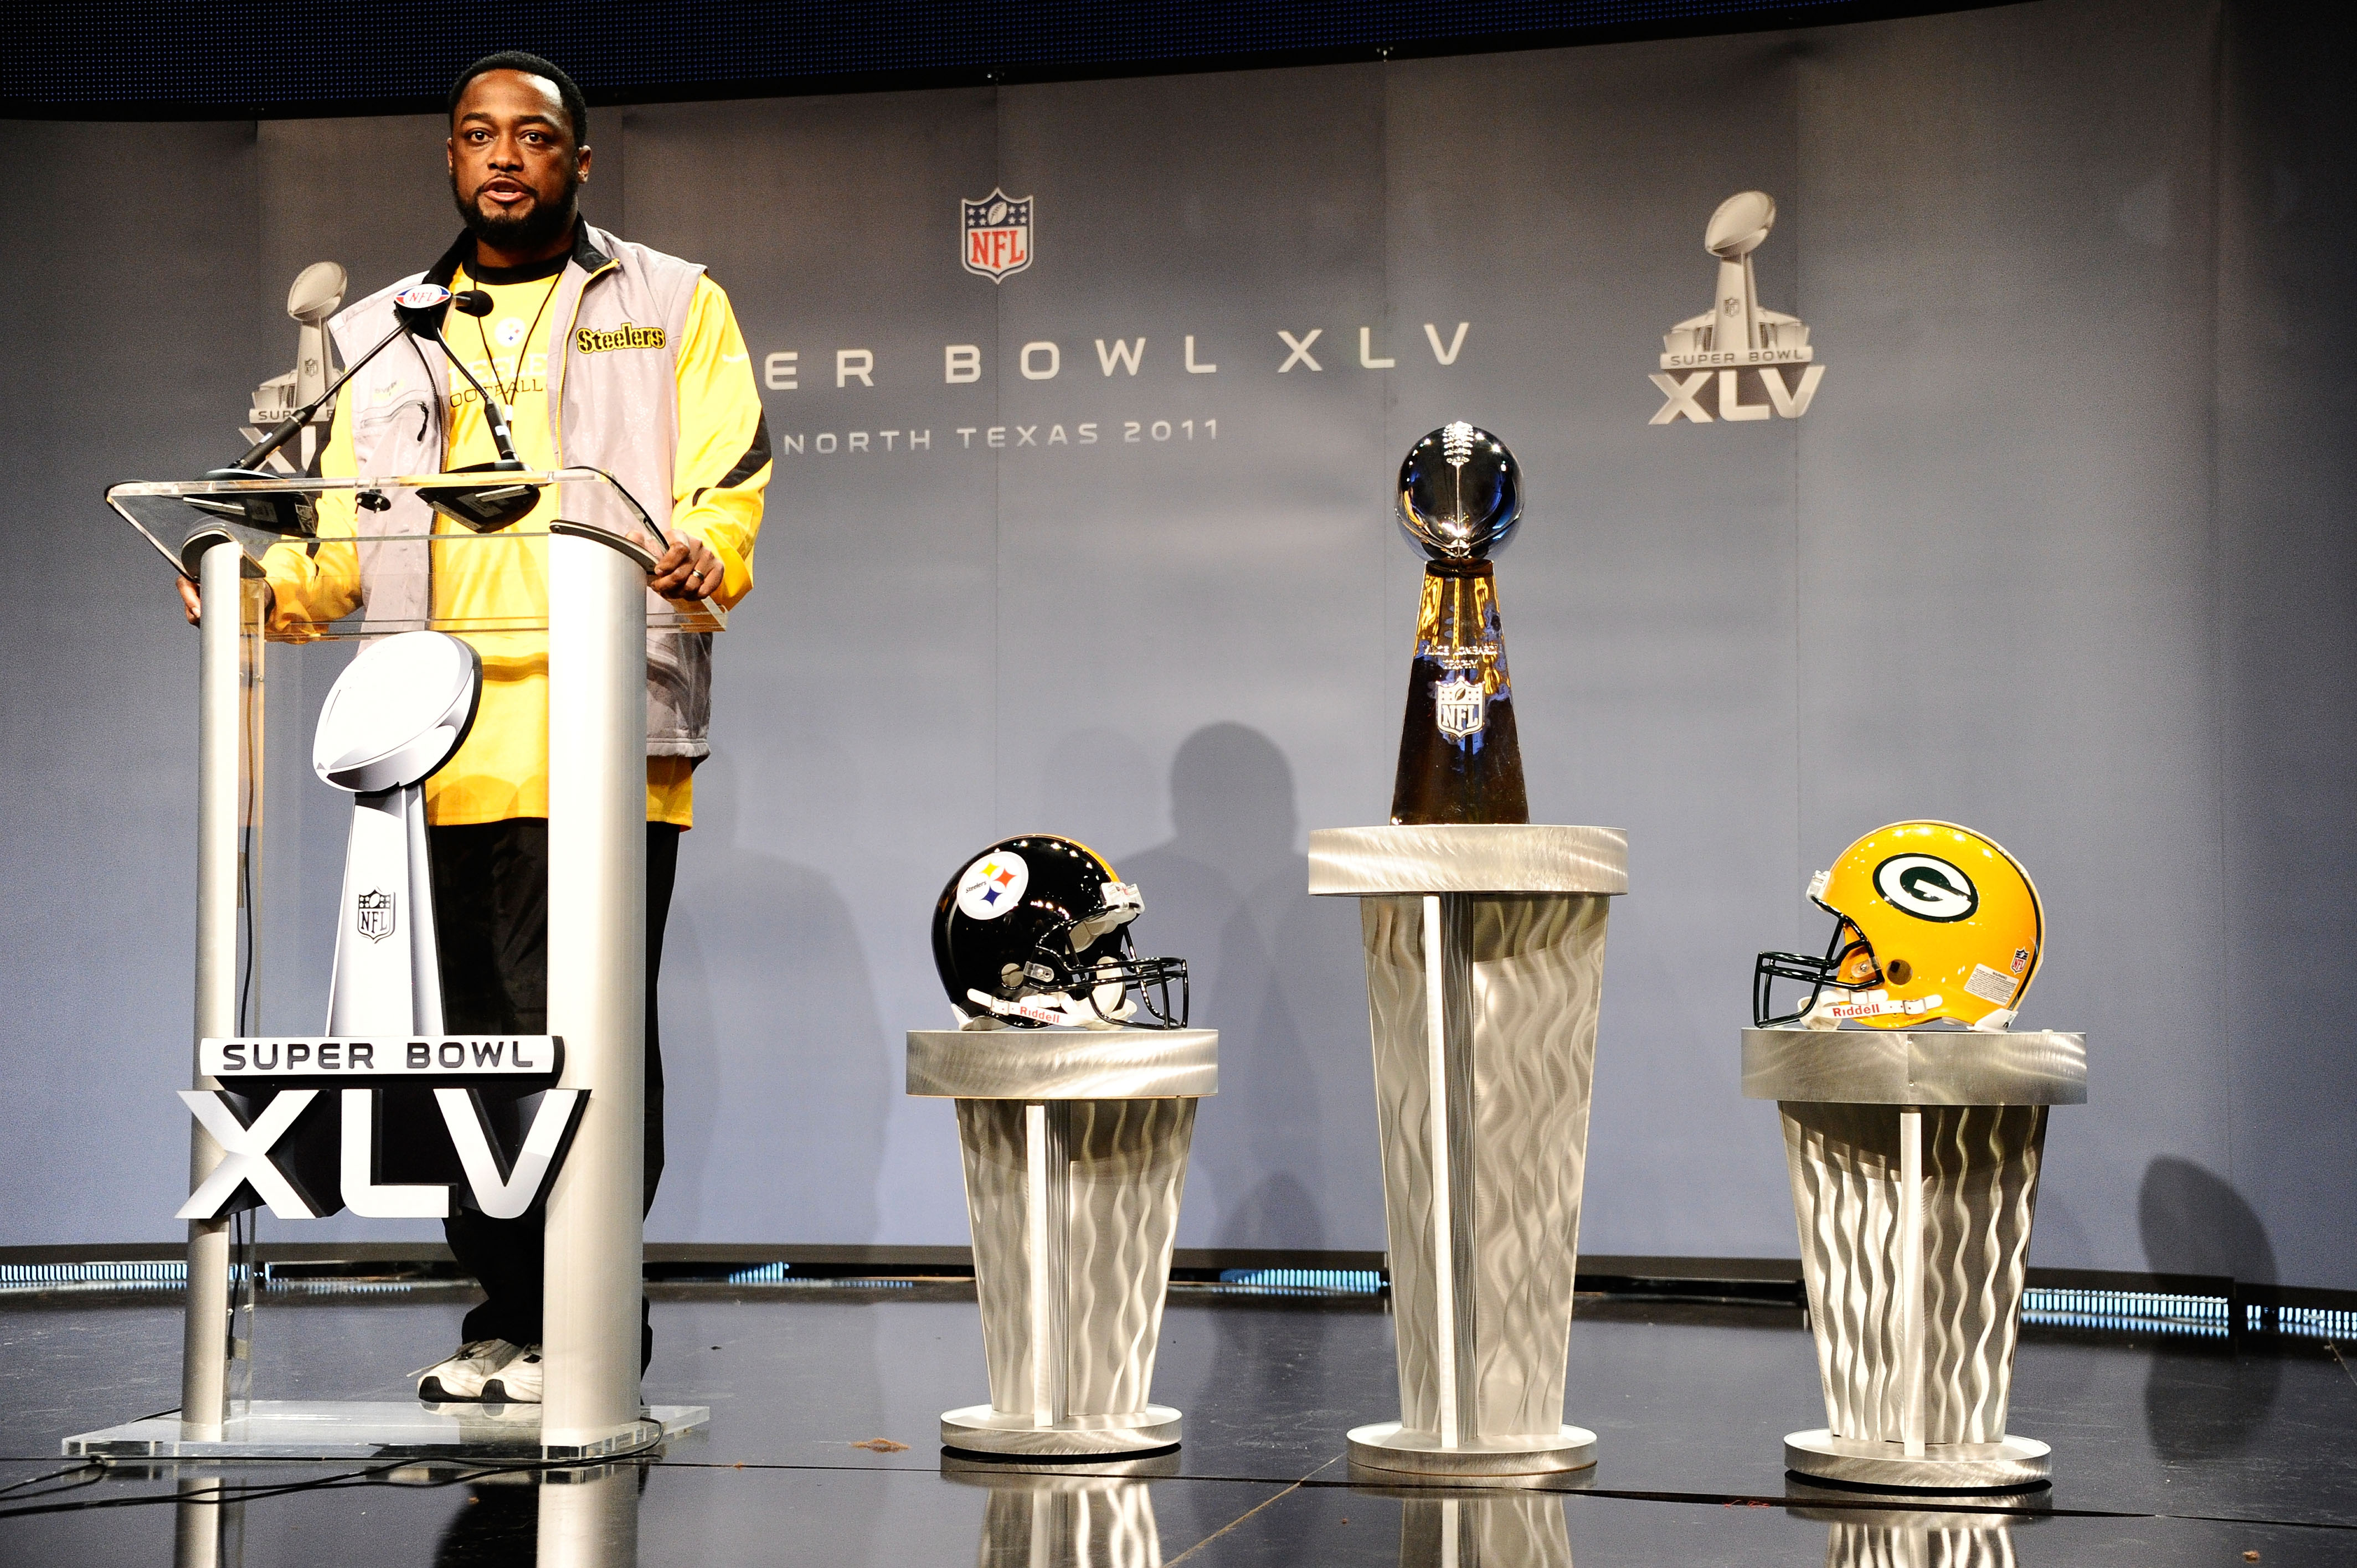 DALLAS, TX - FEBRUARY 04:  Head coach Mike Tomlin of the Pittsburgh Steelers speaks during a press conference at the Super Bowl XLV media center on February 4, 2011 in Dallas, Texas. The Green Bay Packers will play the Pittsburgh Steelers in Super Bowl XL